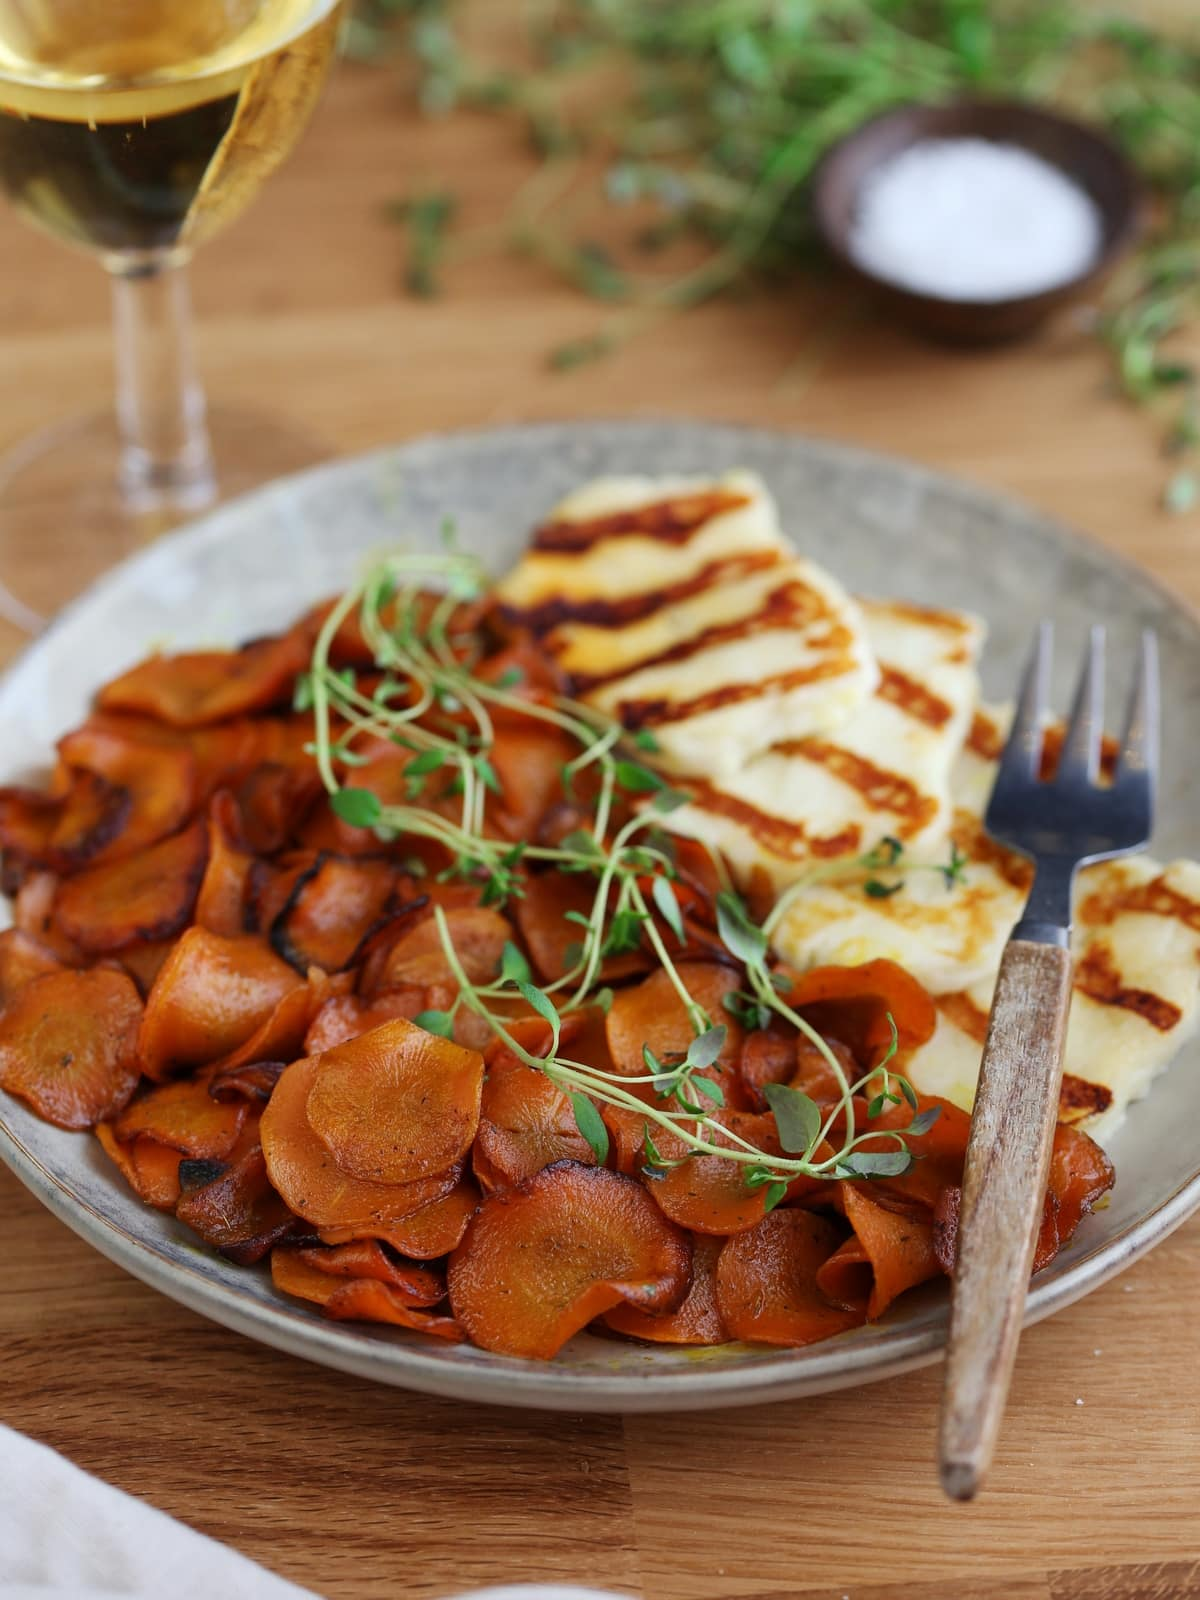 Serving suggestion: grilled halloumi with sauteed carrots and white wine.